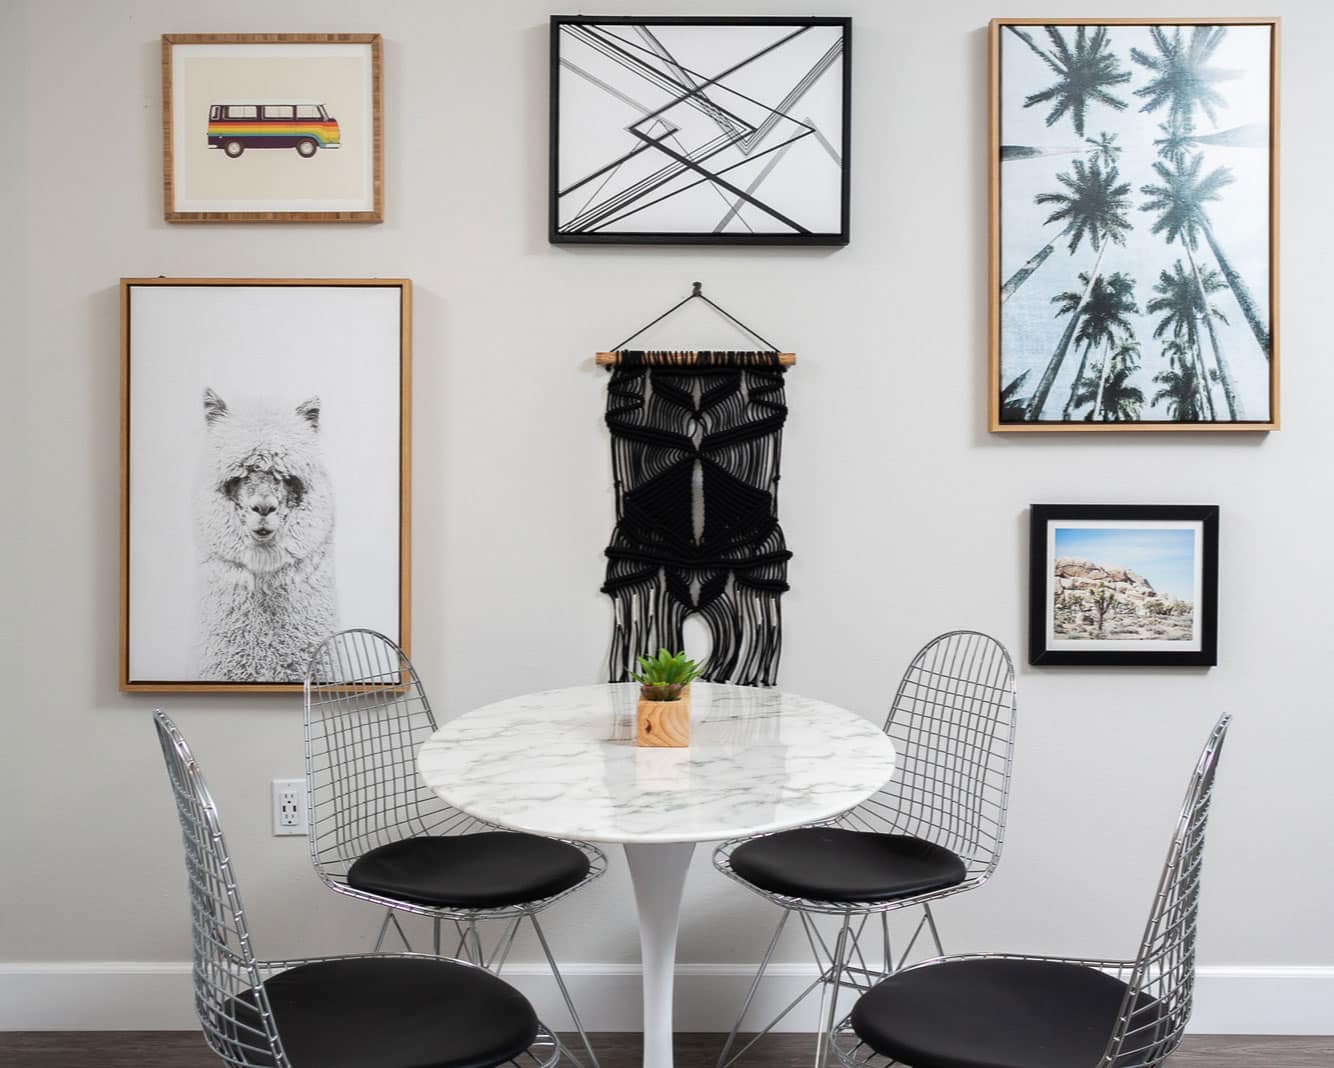 Dining area with marble round table, four metal chairs, and paintings on the wall